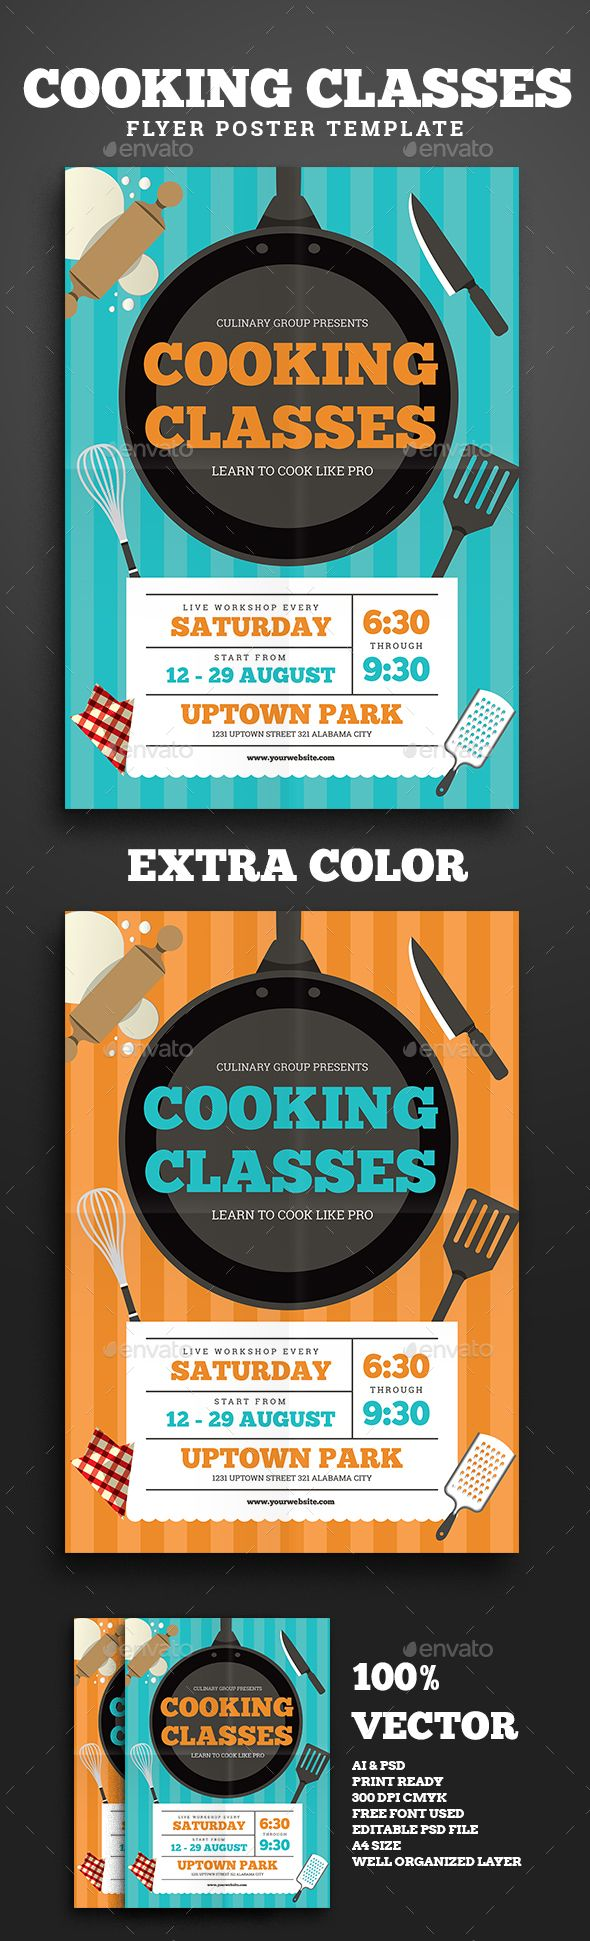 Poster design class 12 - Cooking Classes Flyer